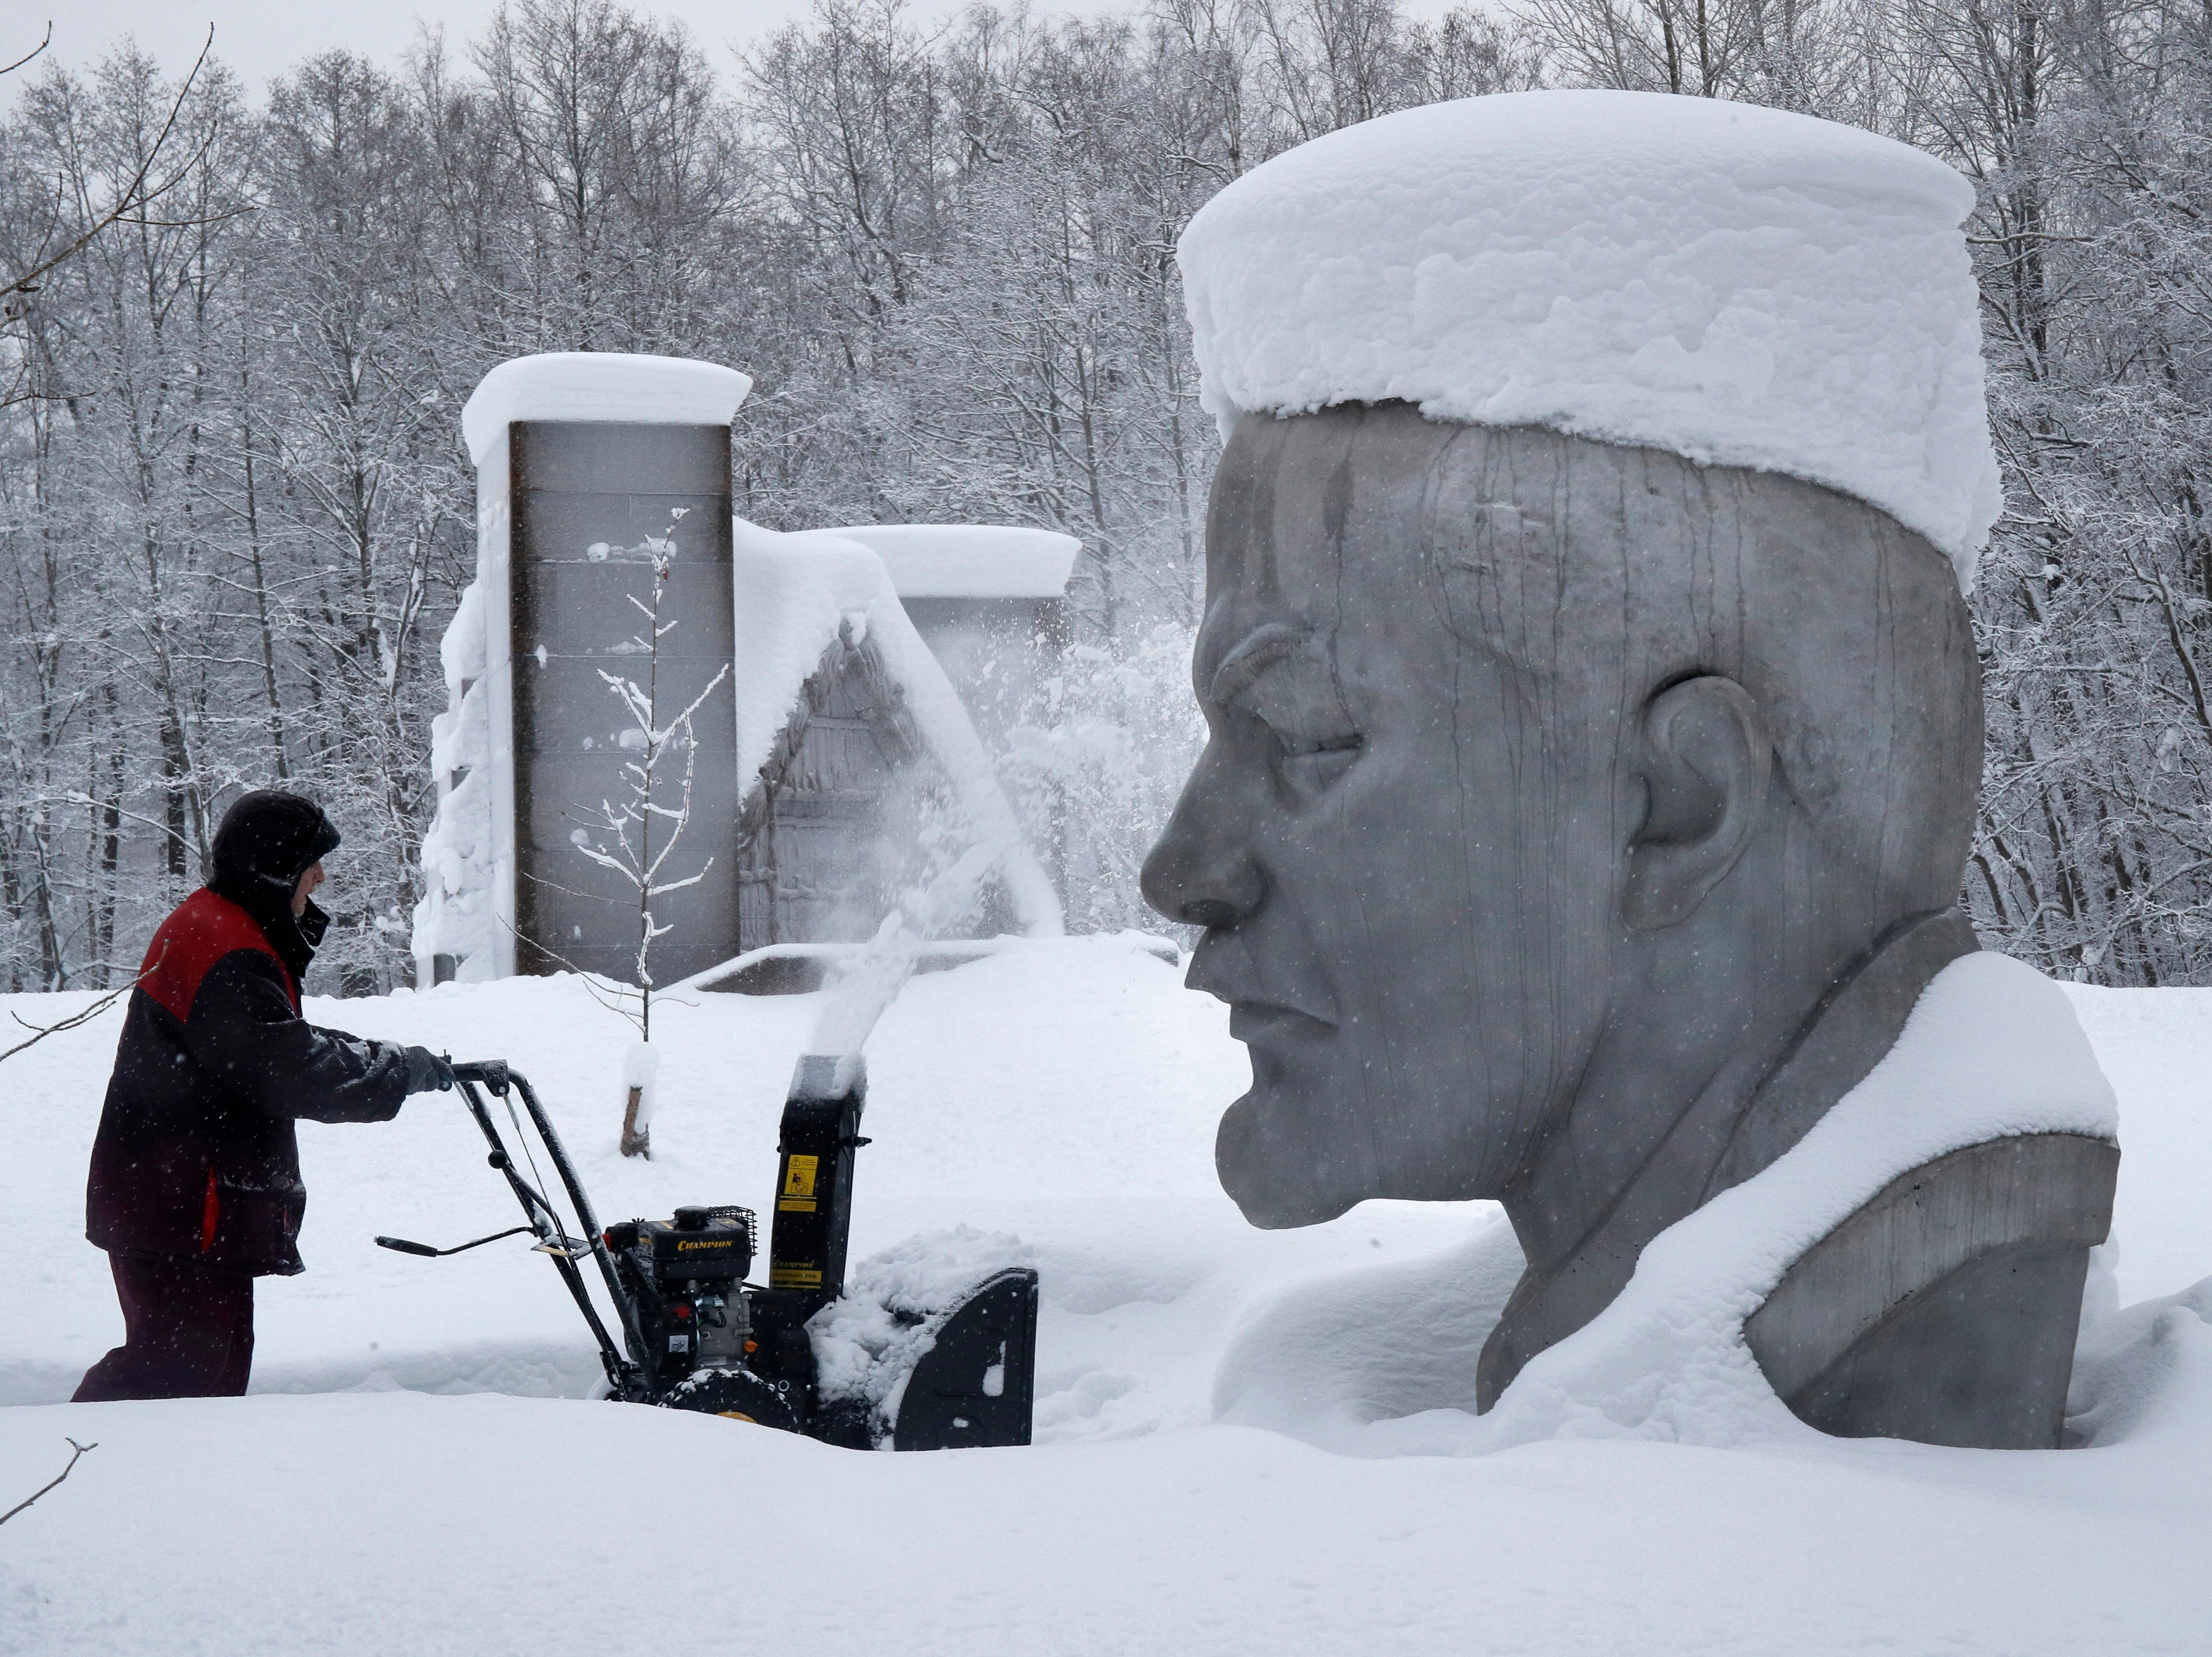 A worker clears snow next to the snow covered statue of Soviet Union founder Vladimir Lenin at the Lenin Hut Museum in a forest near Razliv Lake, outside St. Petersburg, Russia, Monday, Feb. 4, 2019. Another cyclone caused a week of snowfall in St. Petersburg.